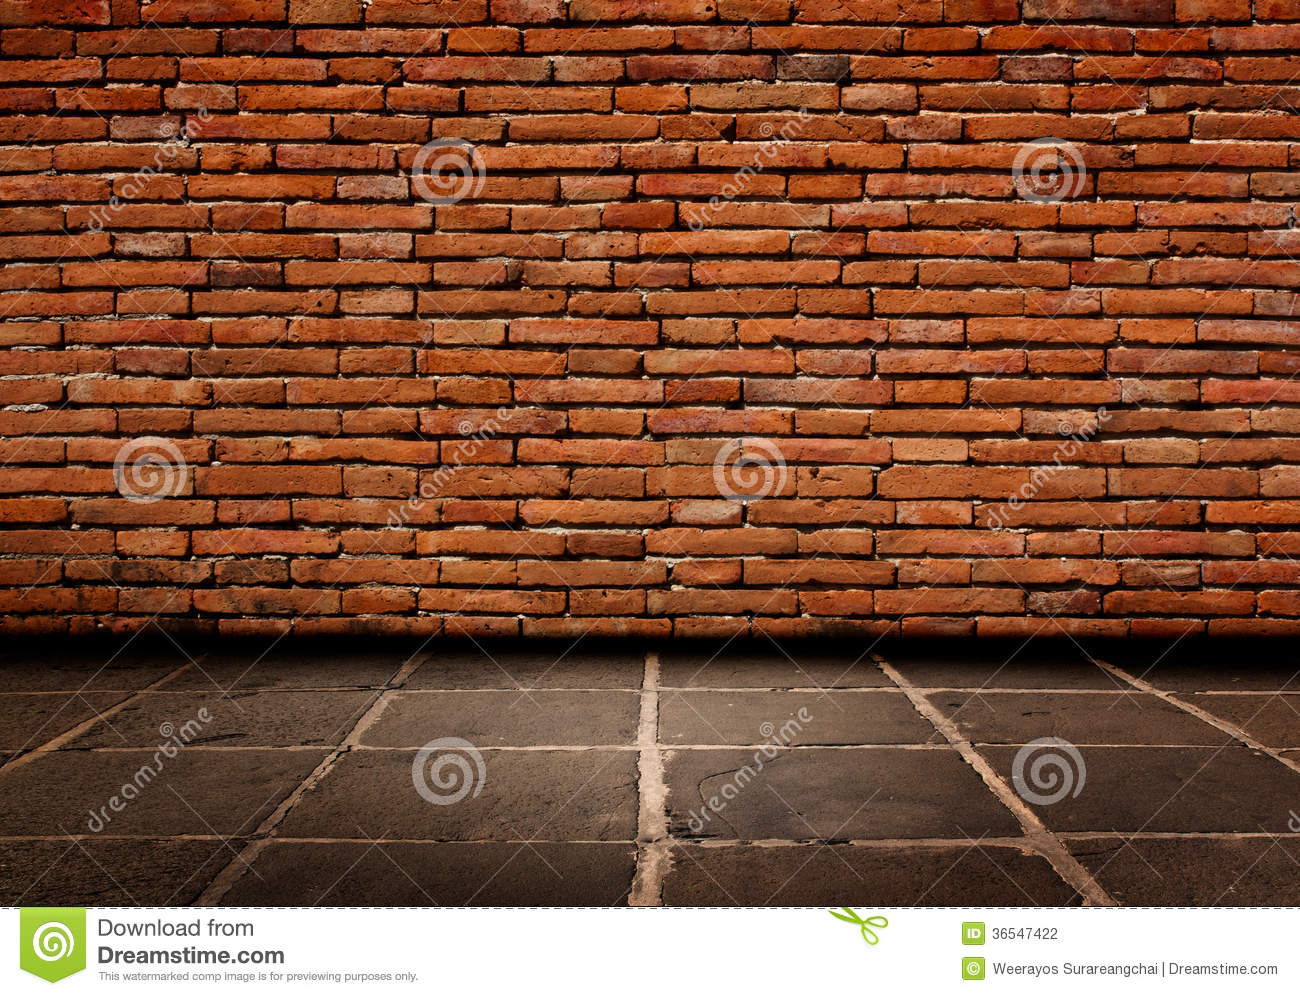 Z Brick Flooring : Red brick structure of the walls and cement flooring